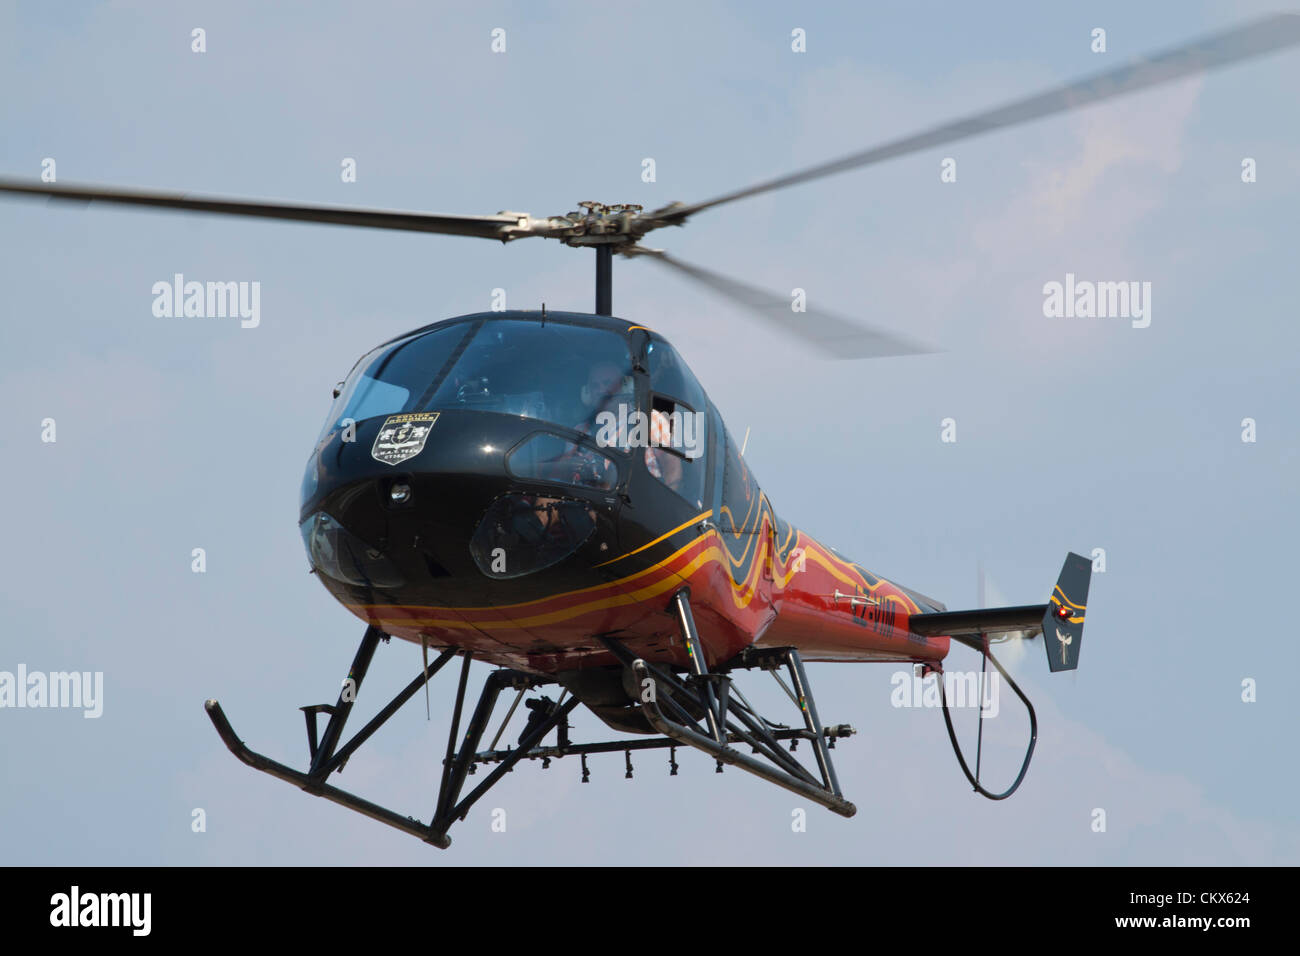 Lesnovo, Bulgaria; 24th Aug 2012. Enstrom 480 light helicopter hovering over the air field. This aircraft is equipped - Stock Image